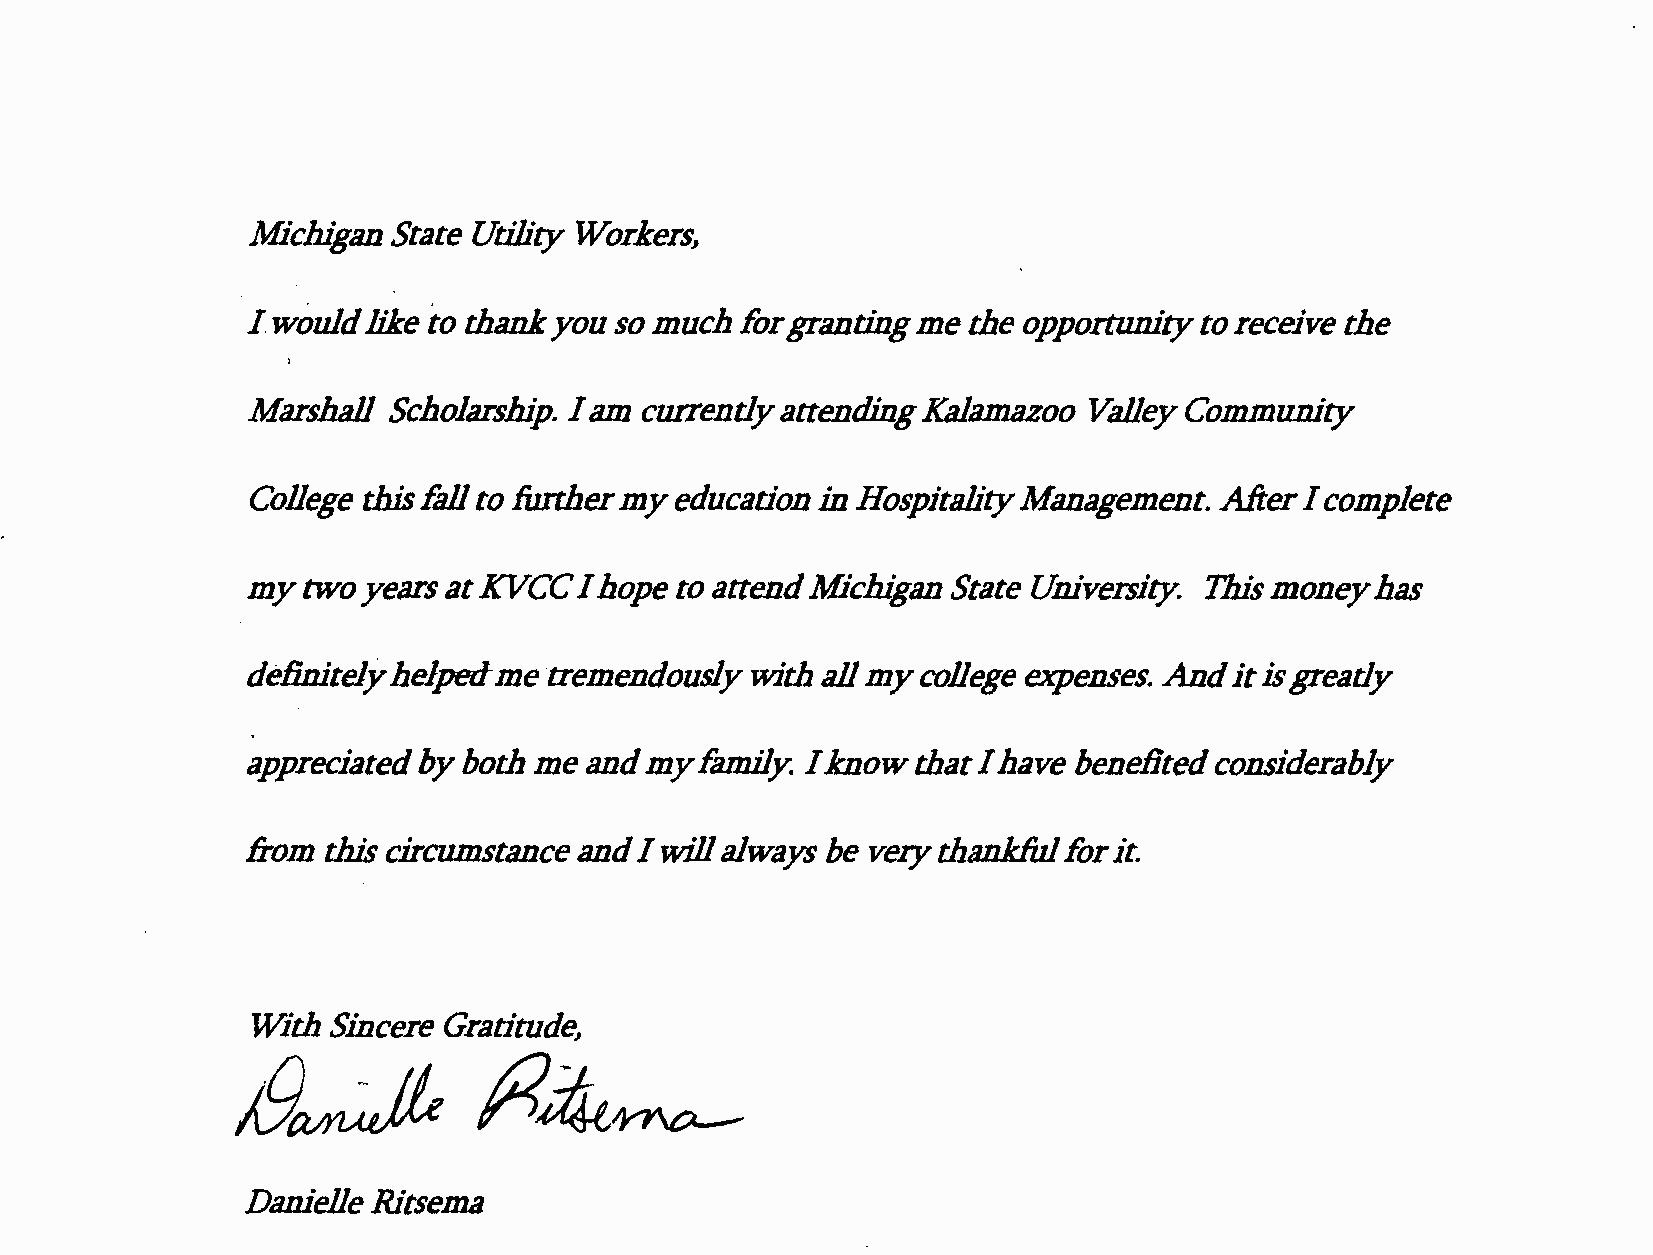 Hicks Scholarship Thank You Letters  Michigan State Utility Workers